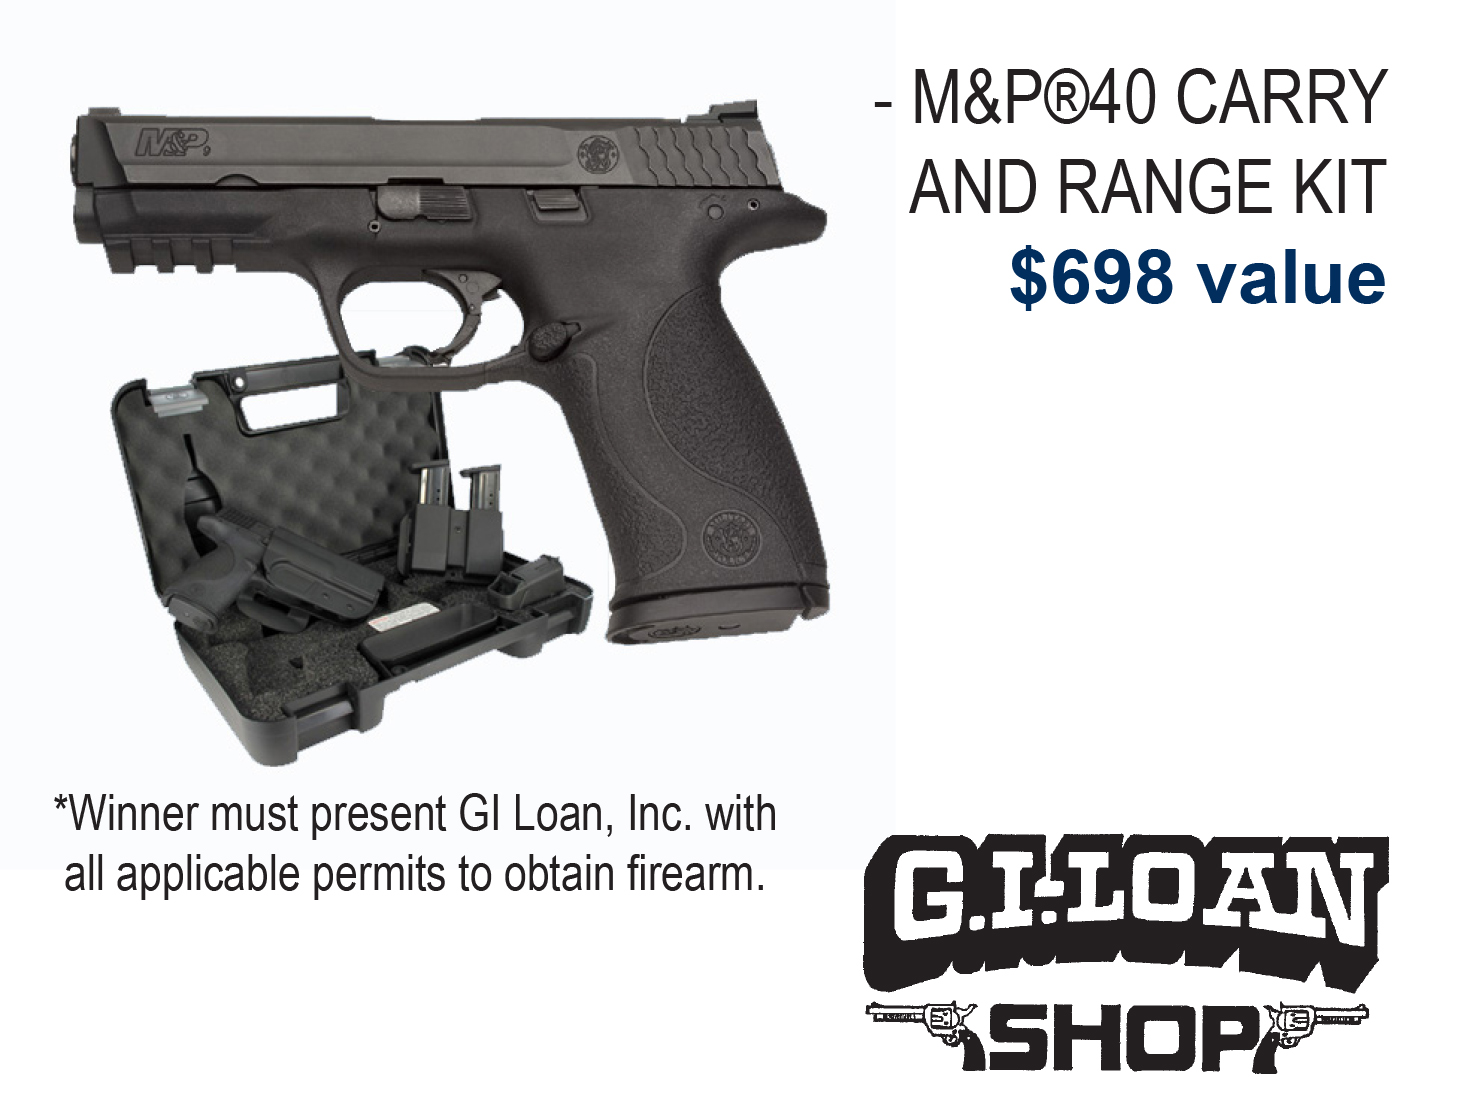 M&P 40 Carry and Range Kit image.jpg